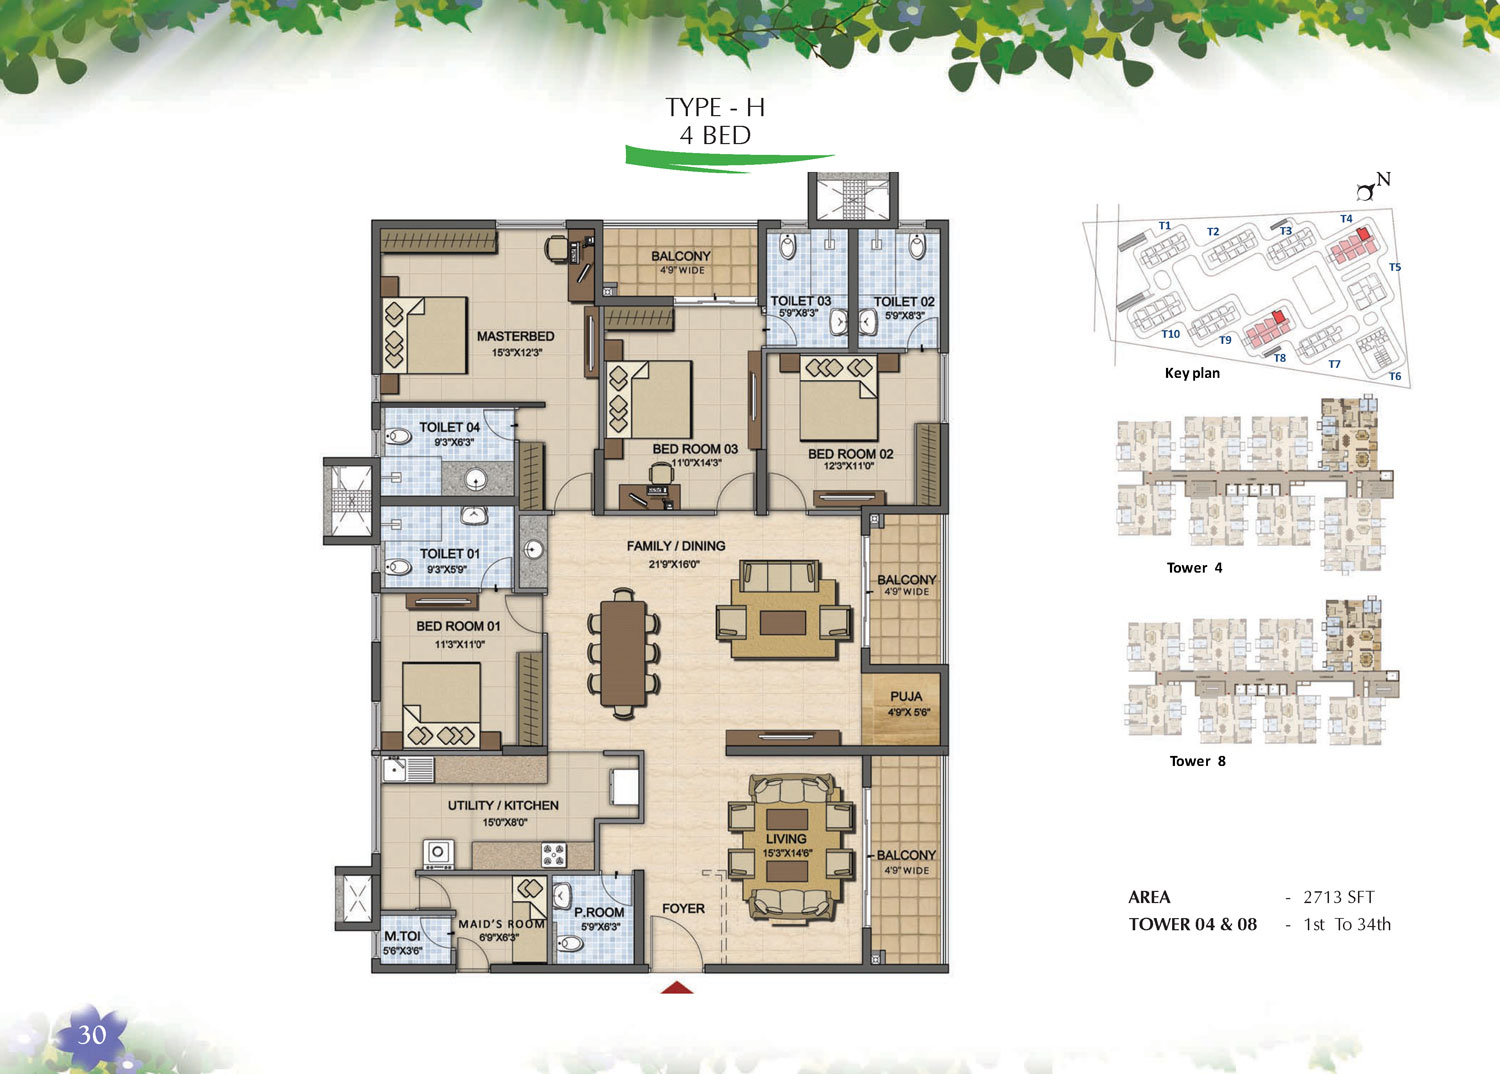 Type H - 4 Bed - 2713 Sq Ft